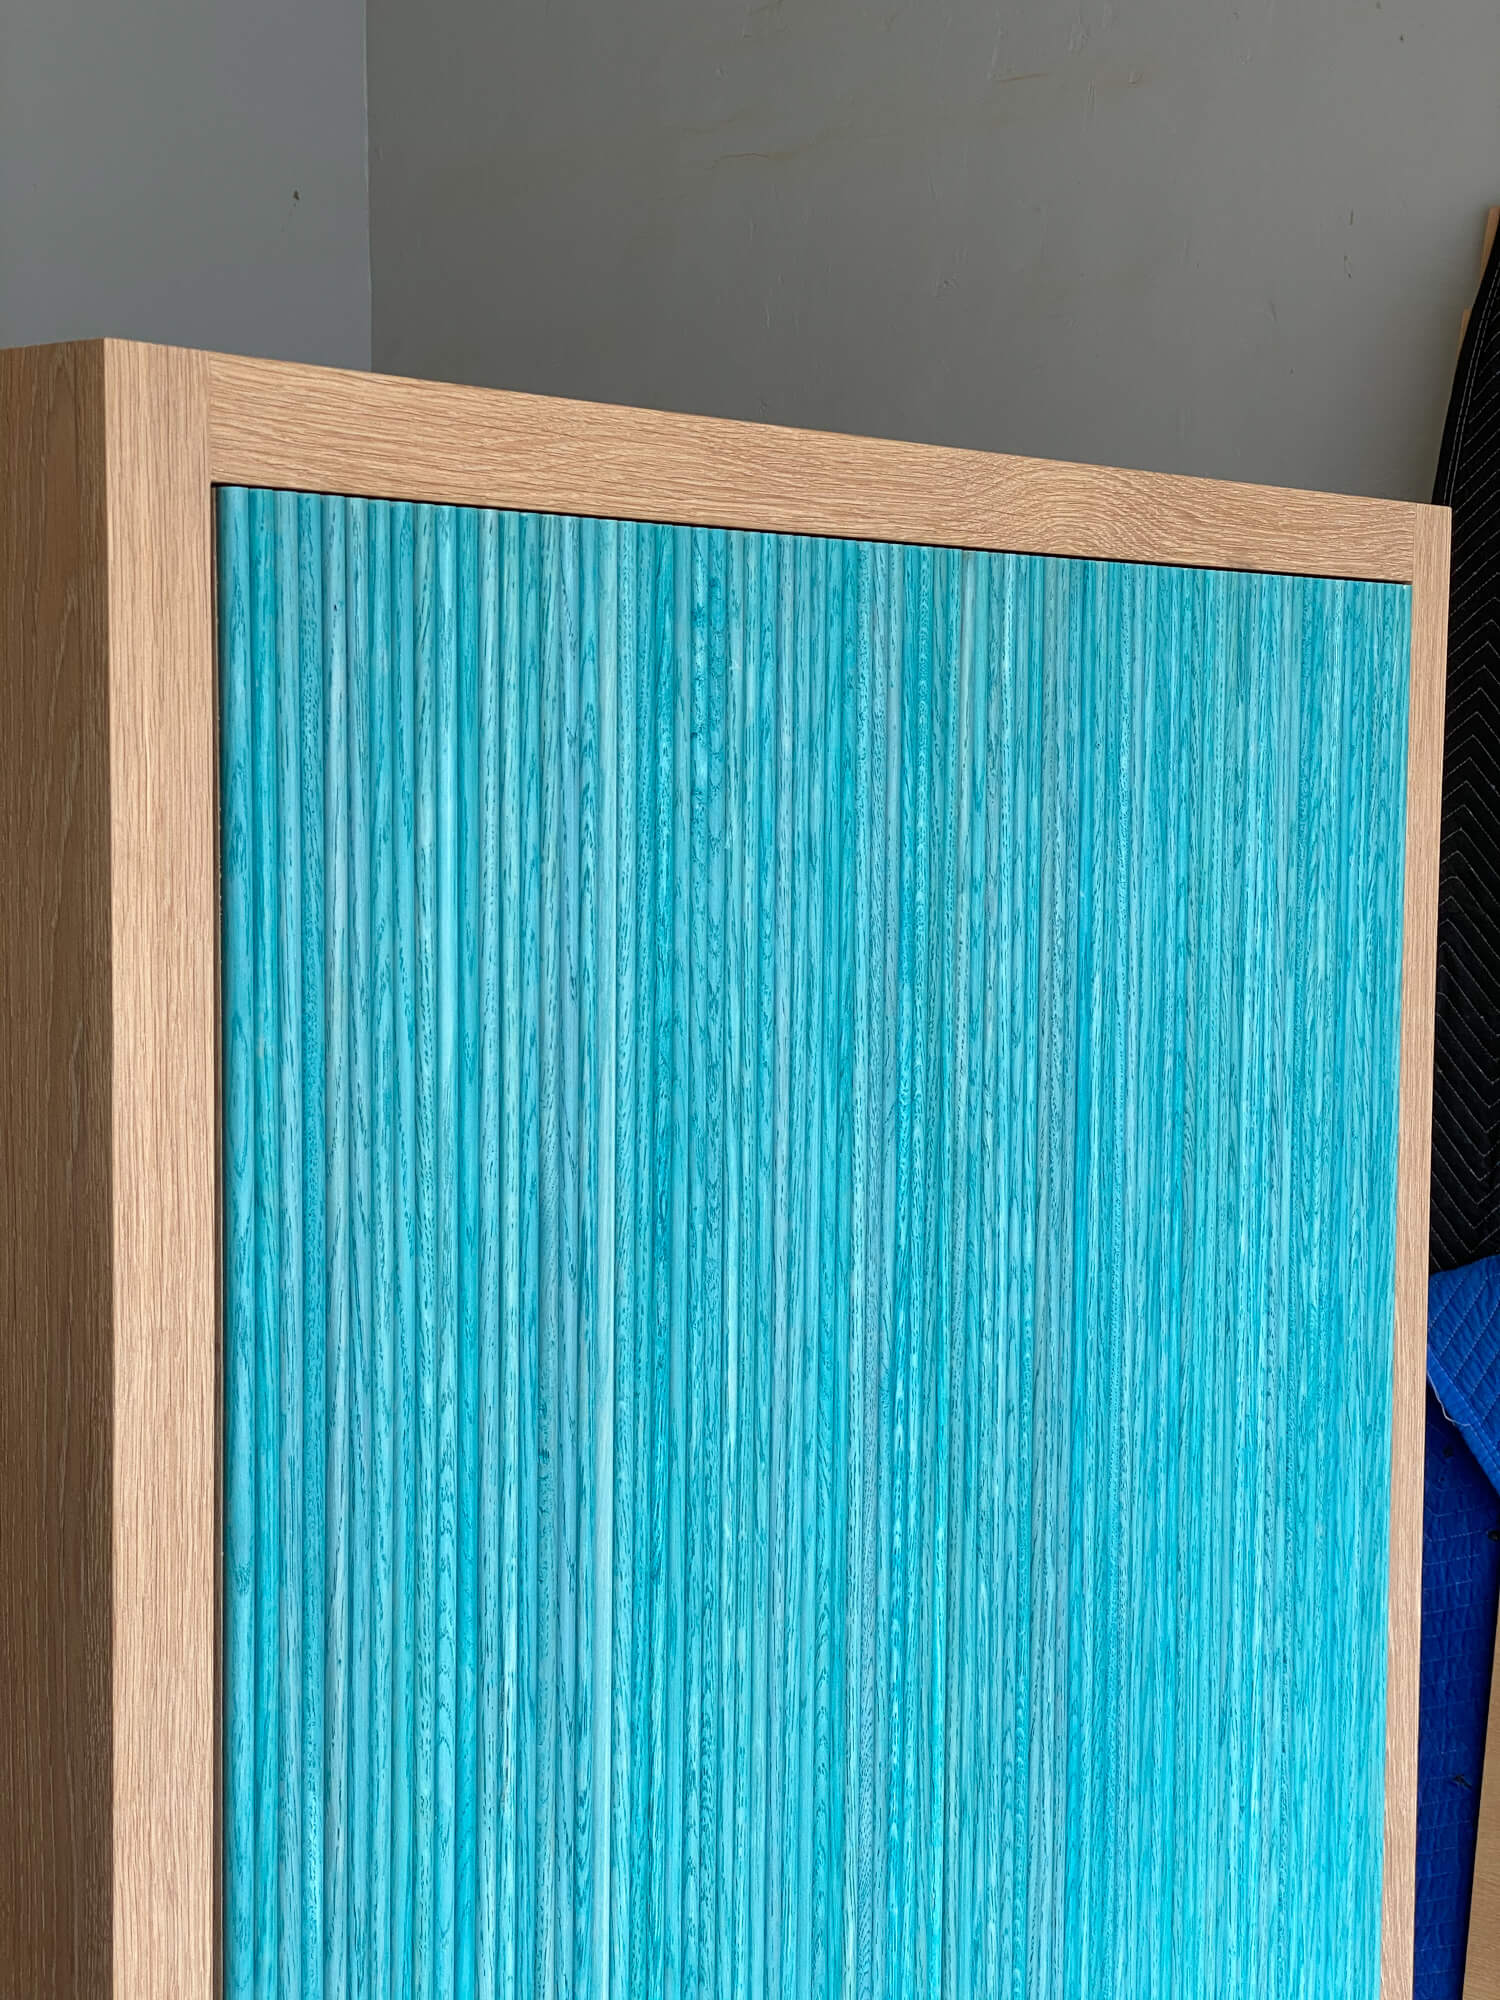 Unique texture to wooden entry cabinet.